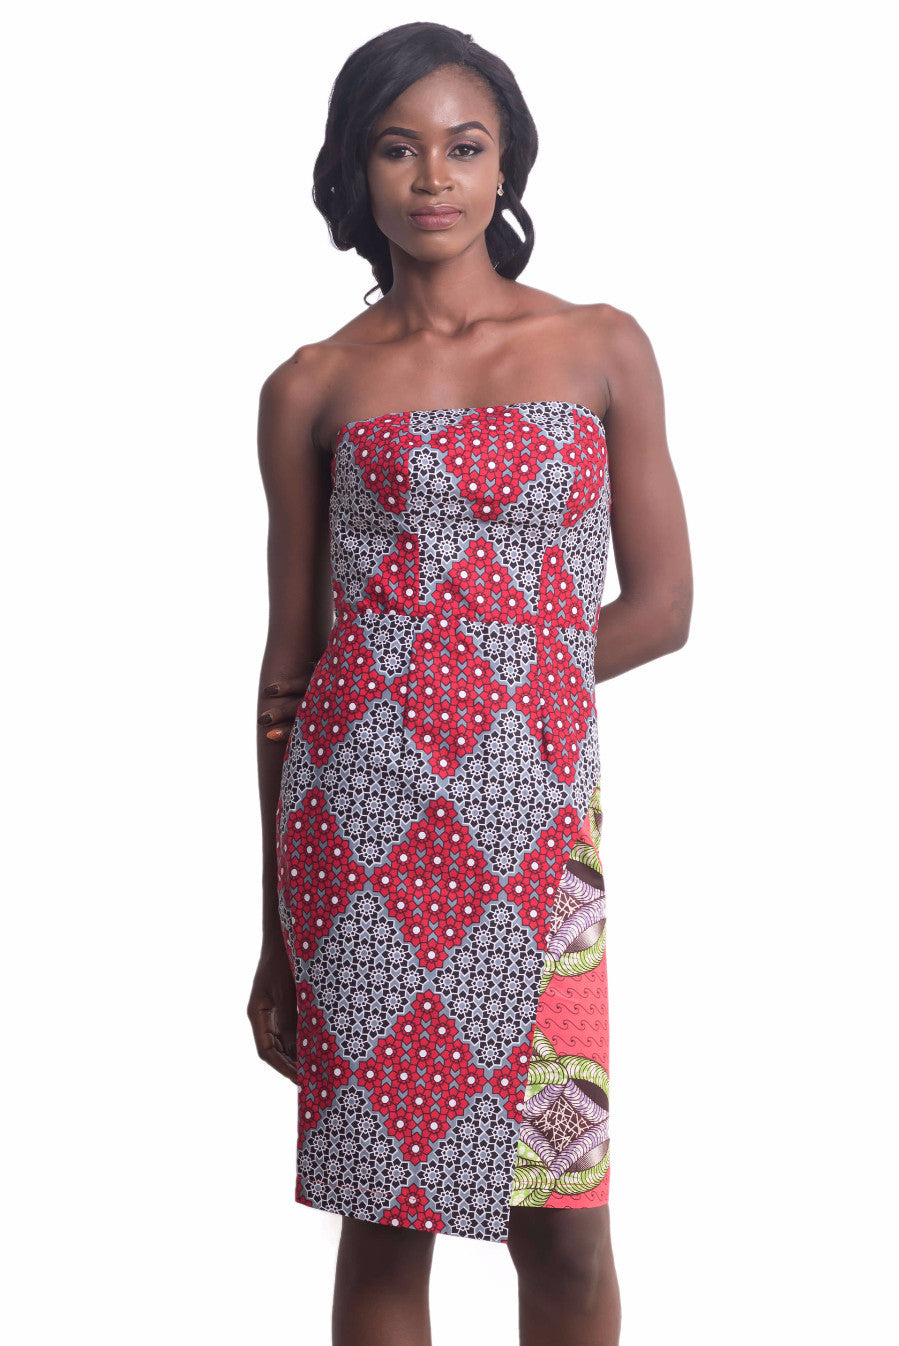 Women wearing Ankarage Women African Print Sisi Eko Faux Wrap Dress (Red on Pink) Ankara Dress Front View